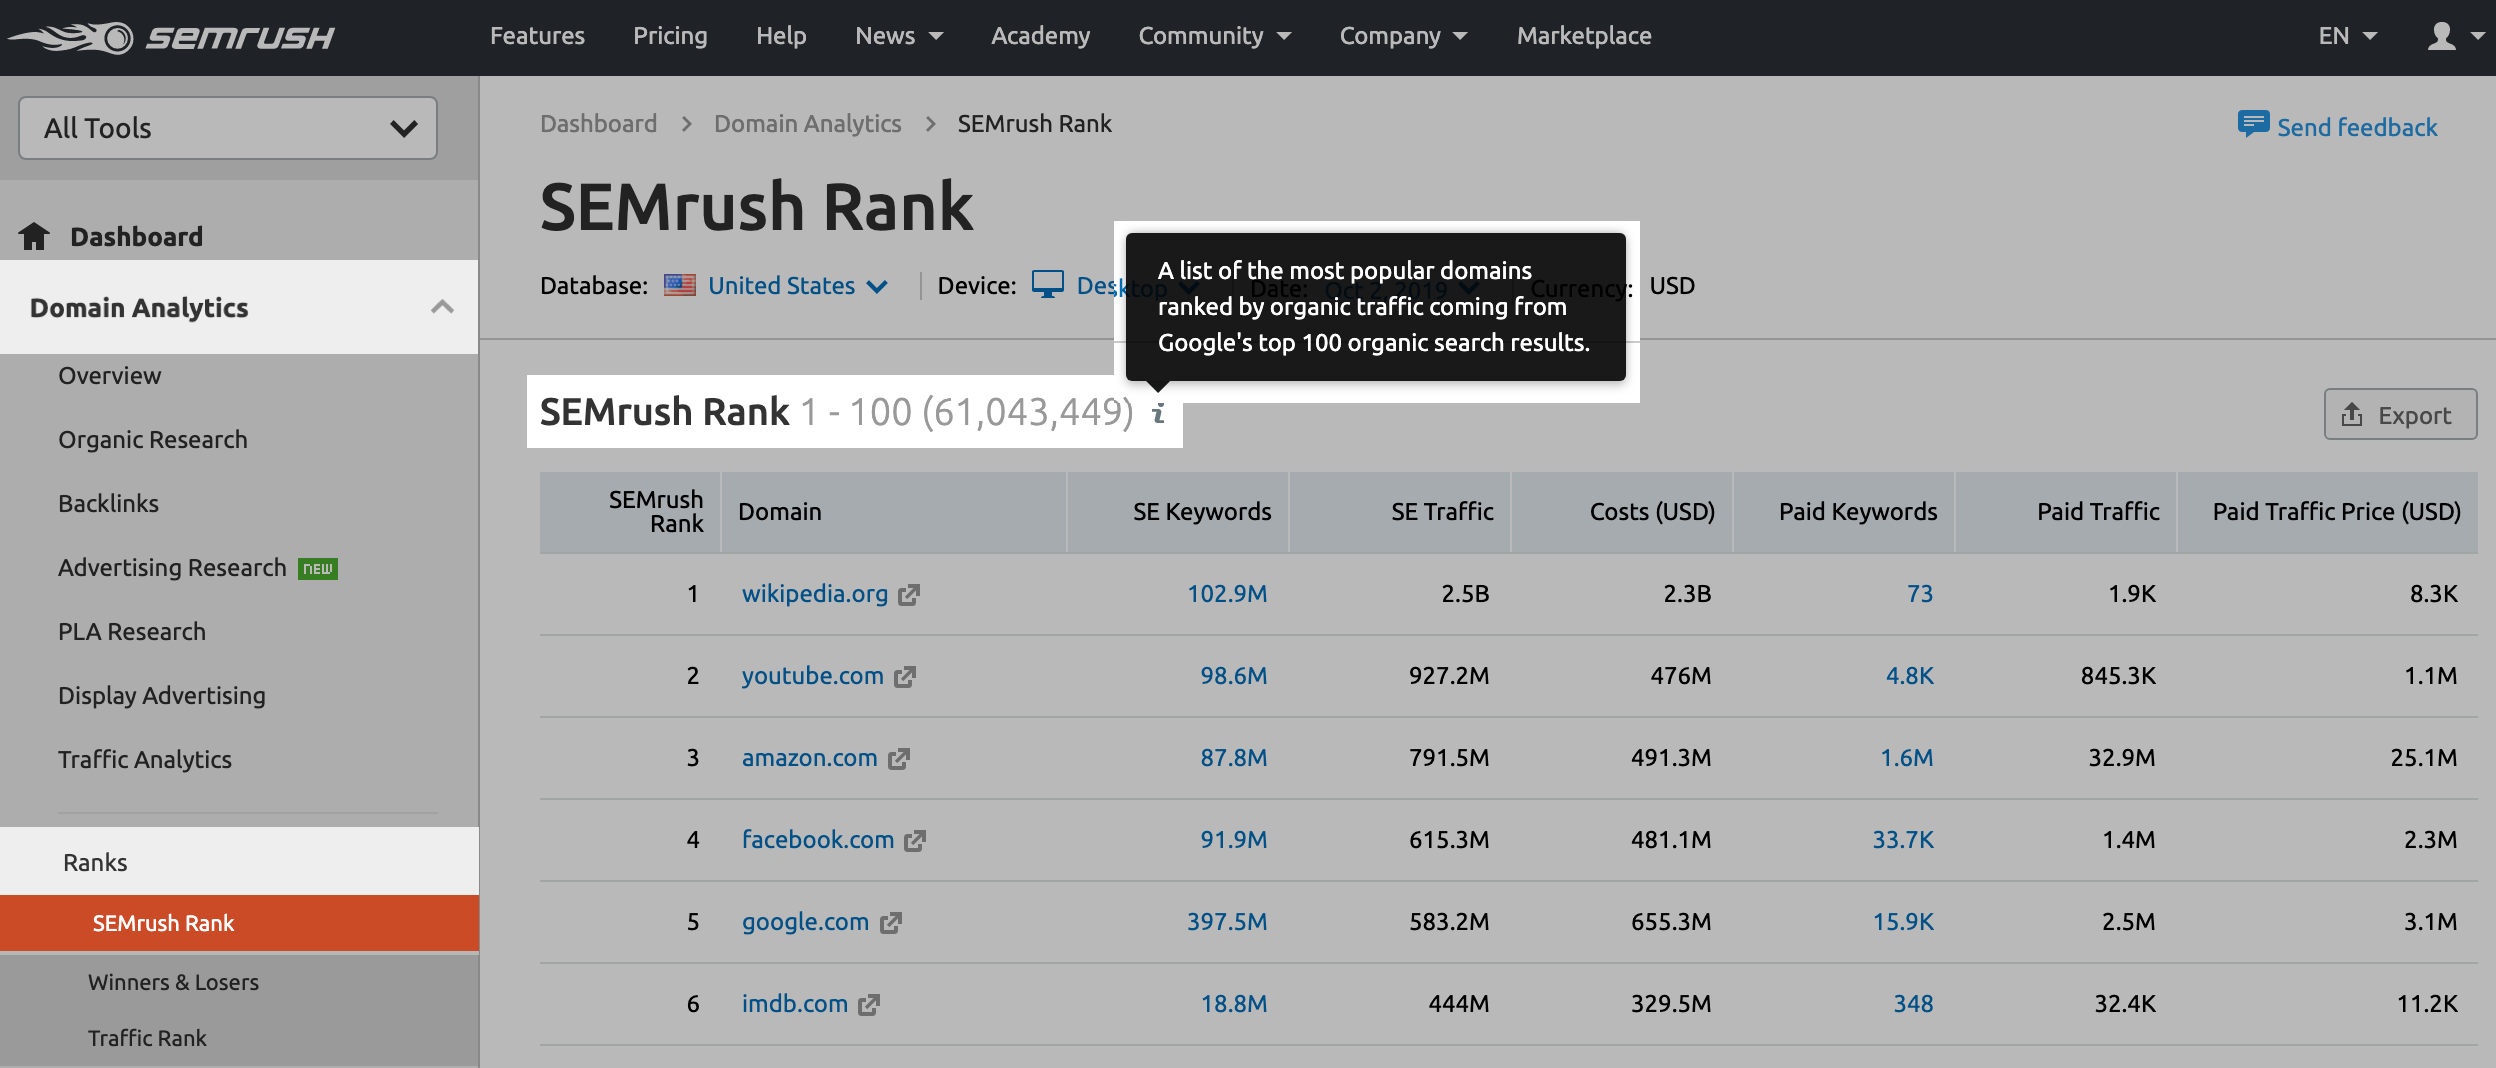 semrush rank image